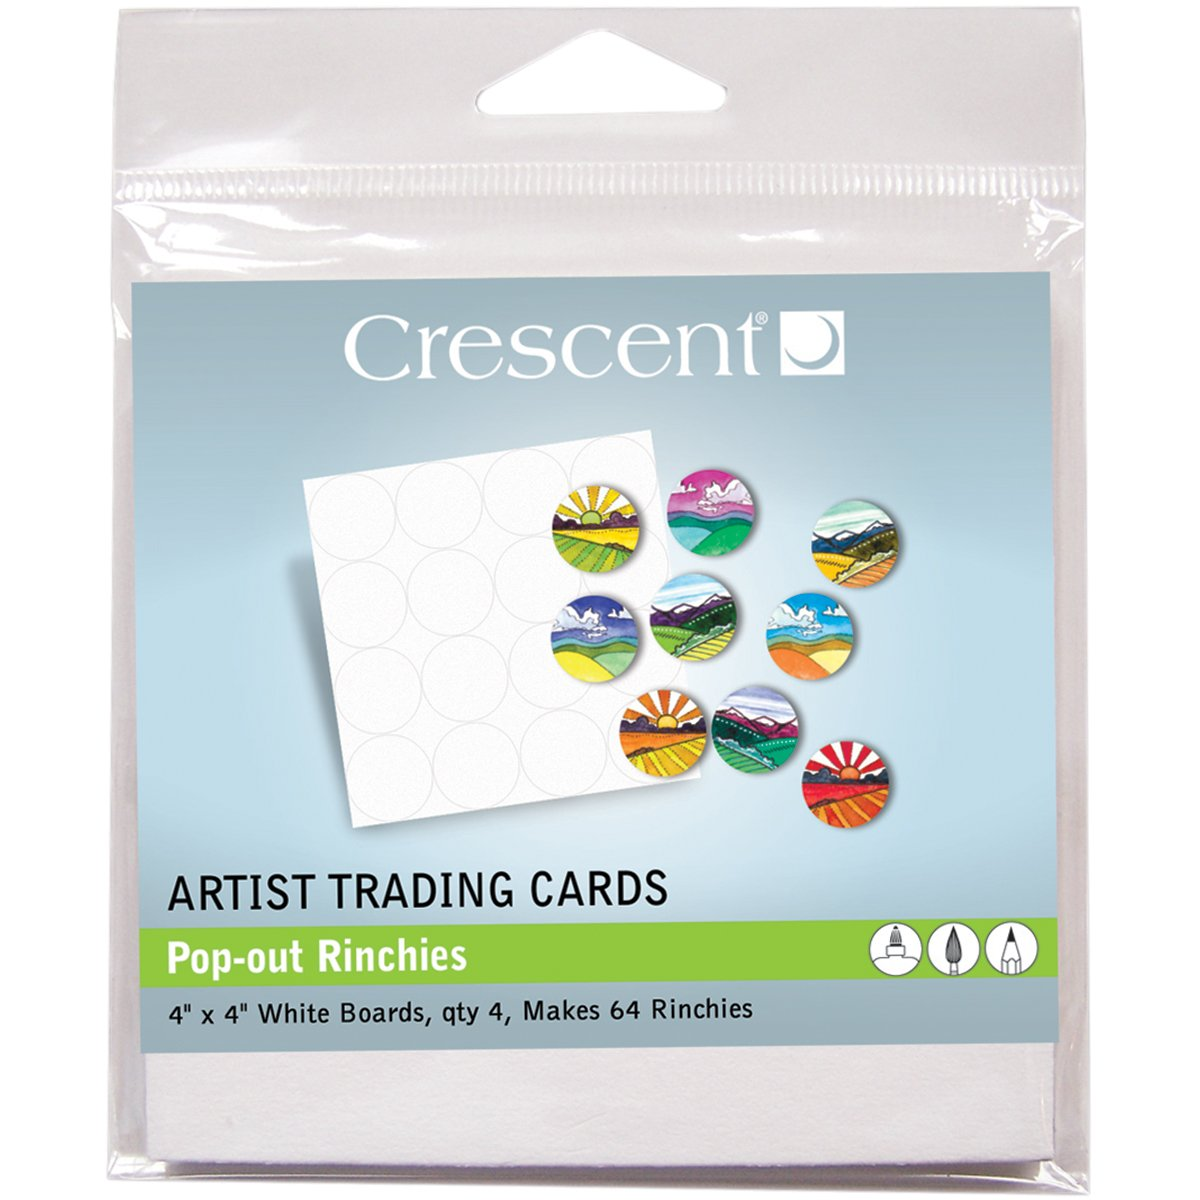 Crescent Cardboard Artist Pop-Out Rinchies Trading Cards (4 Pack), 4' by 4'